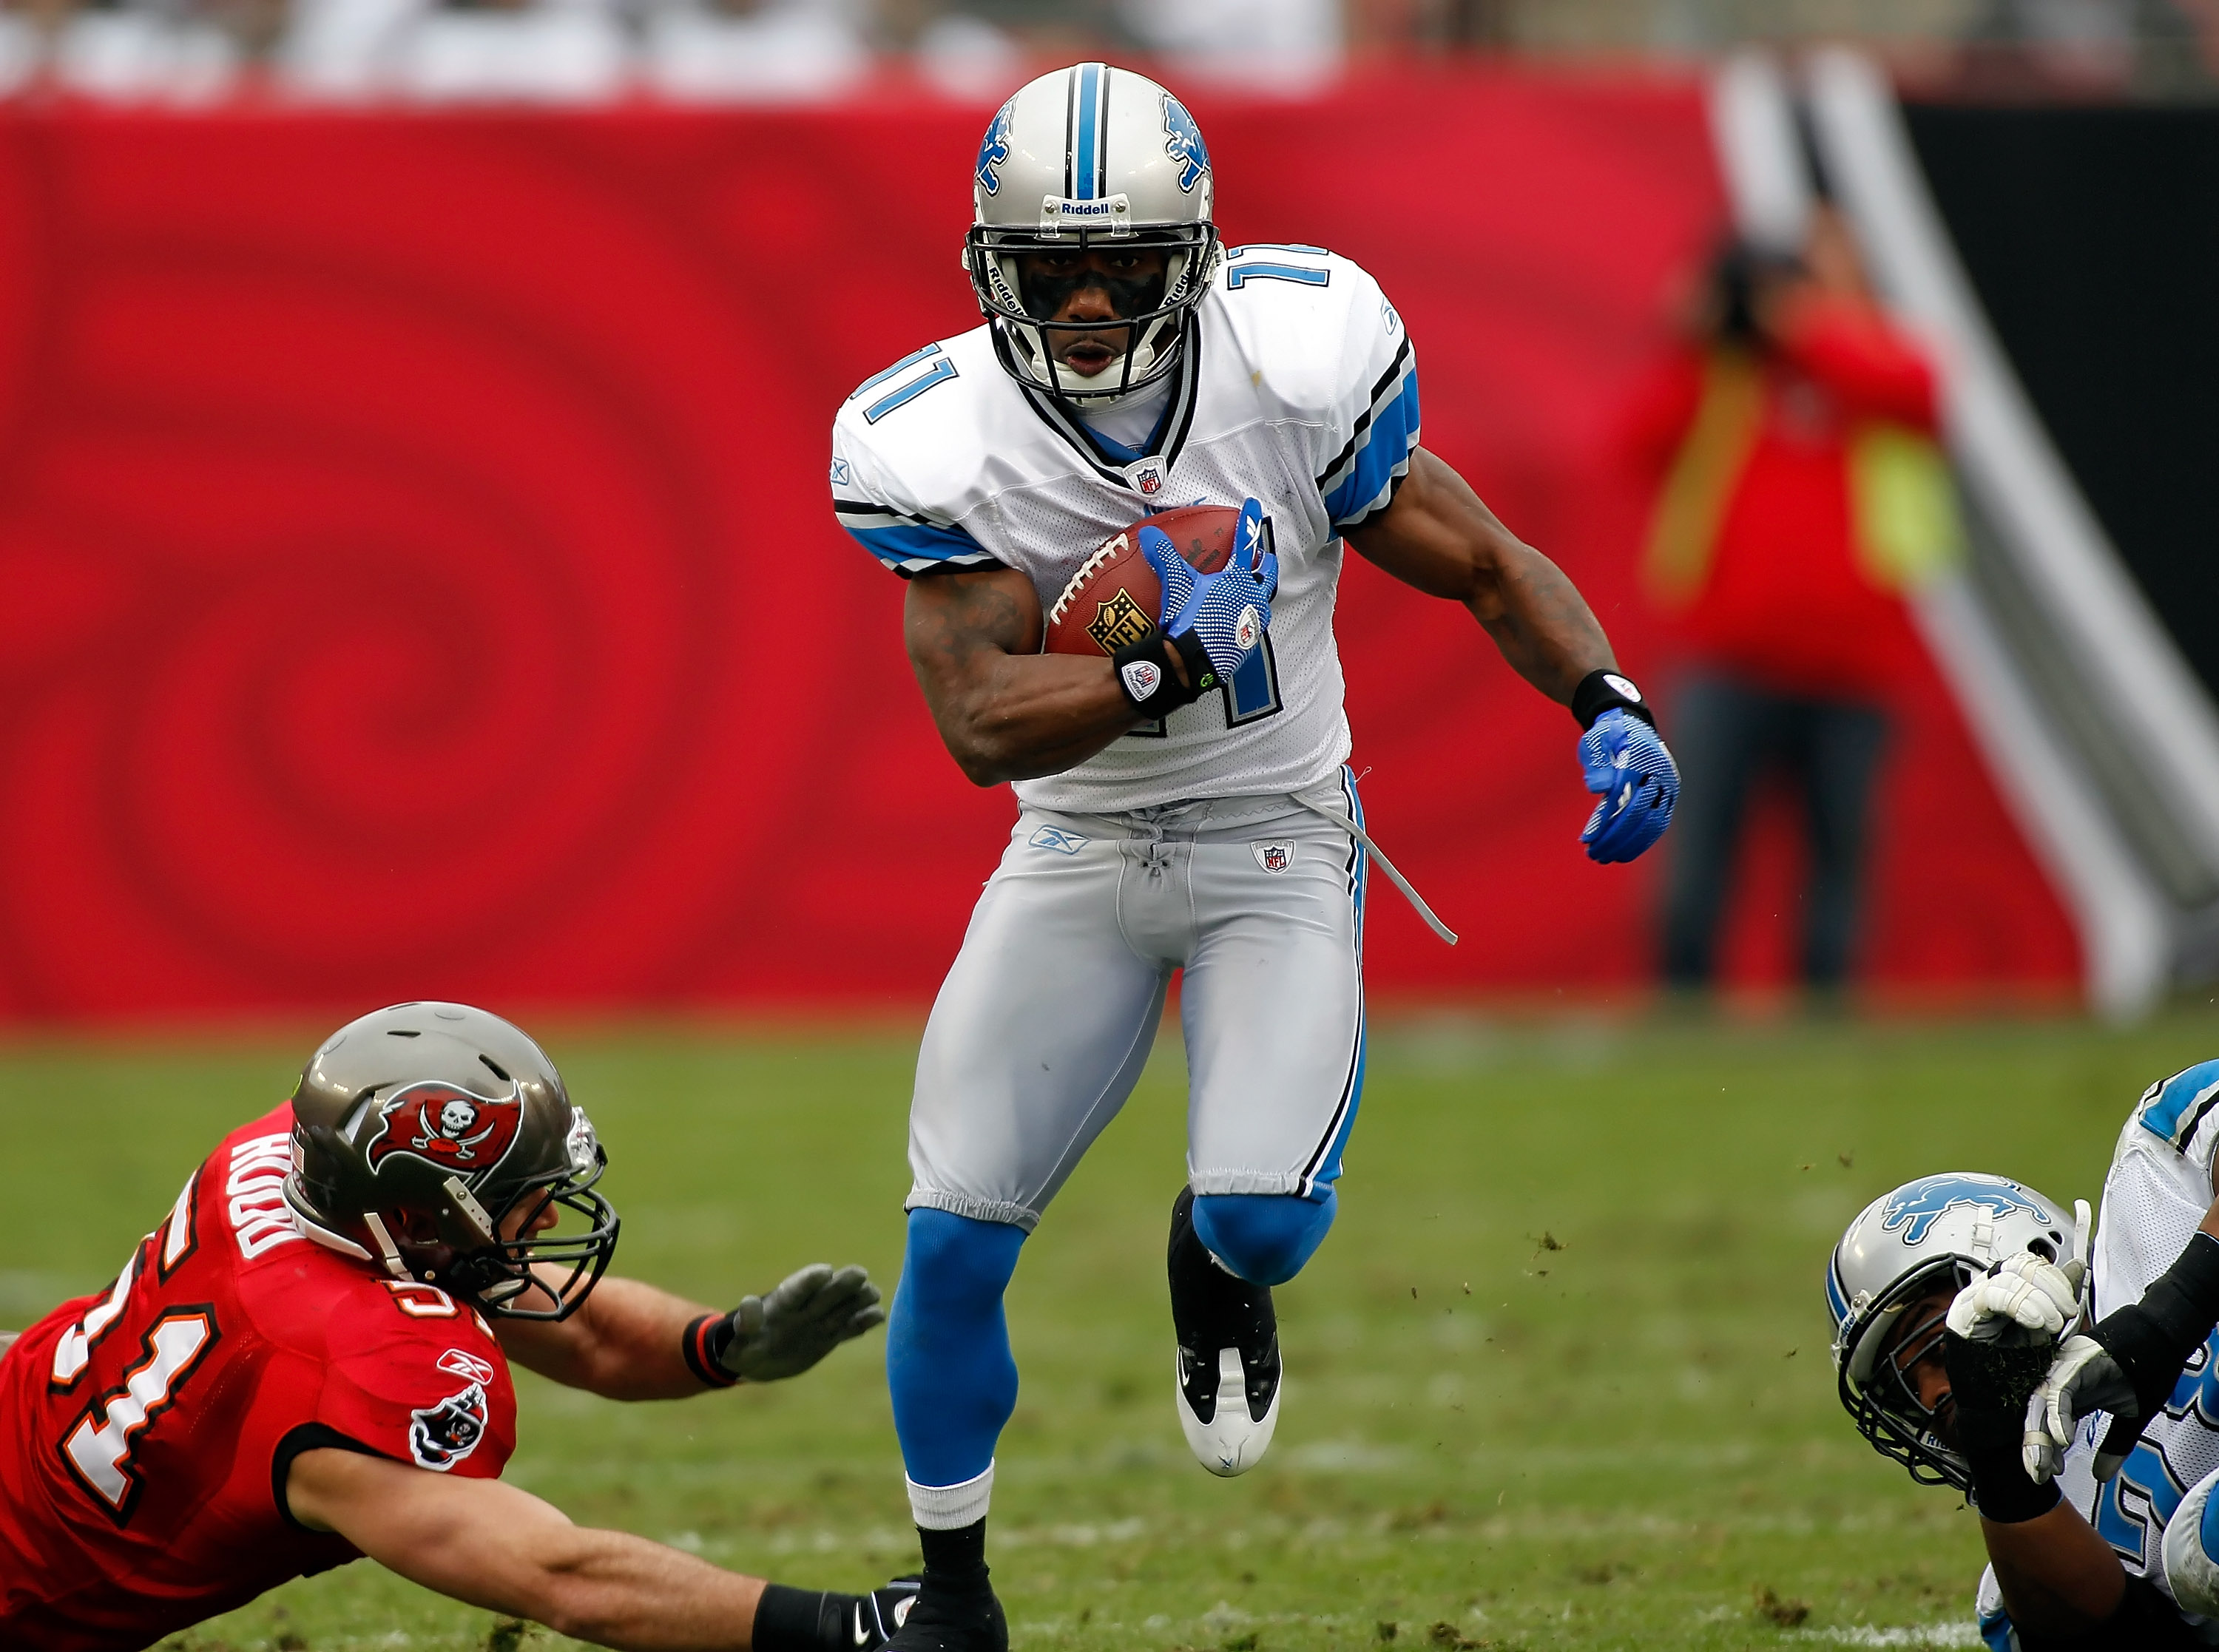 TAMPA, FL - DECEMBER 19:  Receiver Stefan Logan #11 of the Detroit Lions runs the ball against the Tampa Bay Buccaneers during the game at Raymond James Stadium on December 19, 2010 in Tampa, Florida.  (Photo by J. Meric/Getty Images)